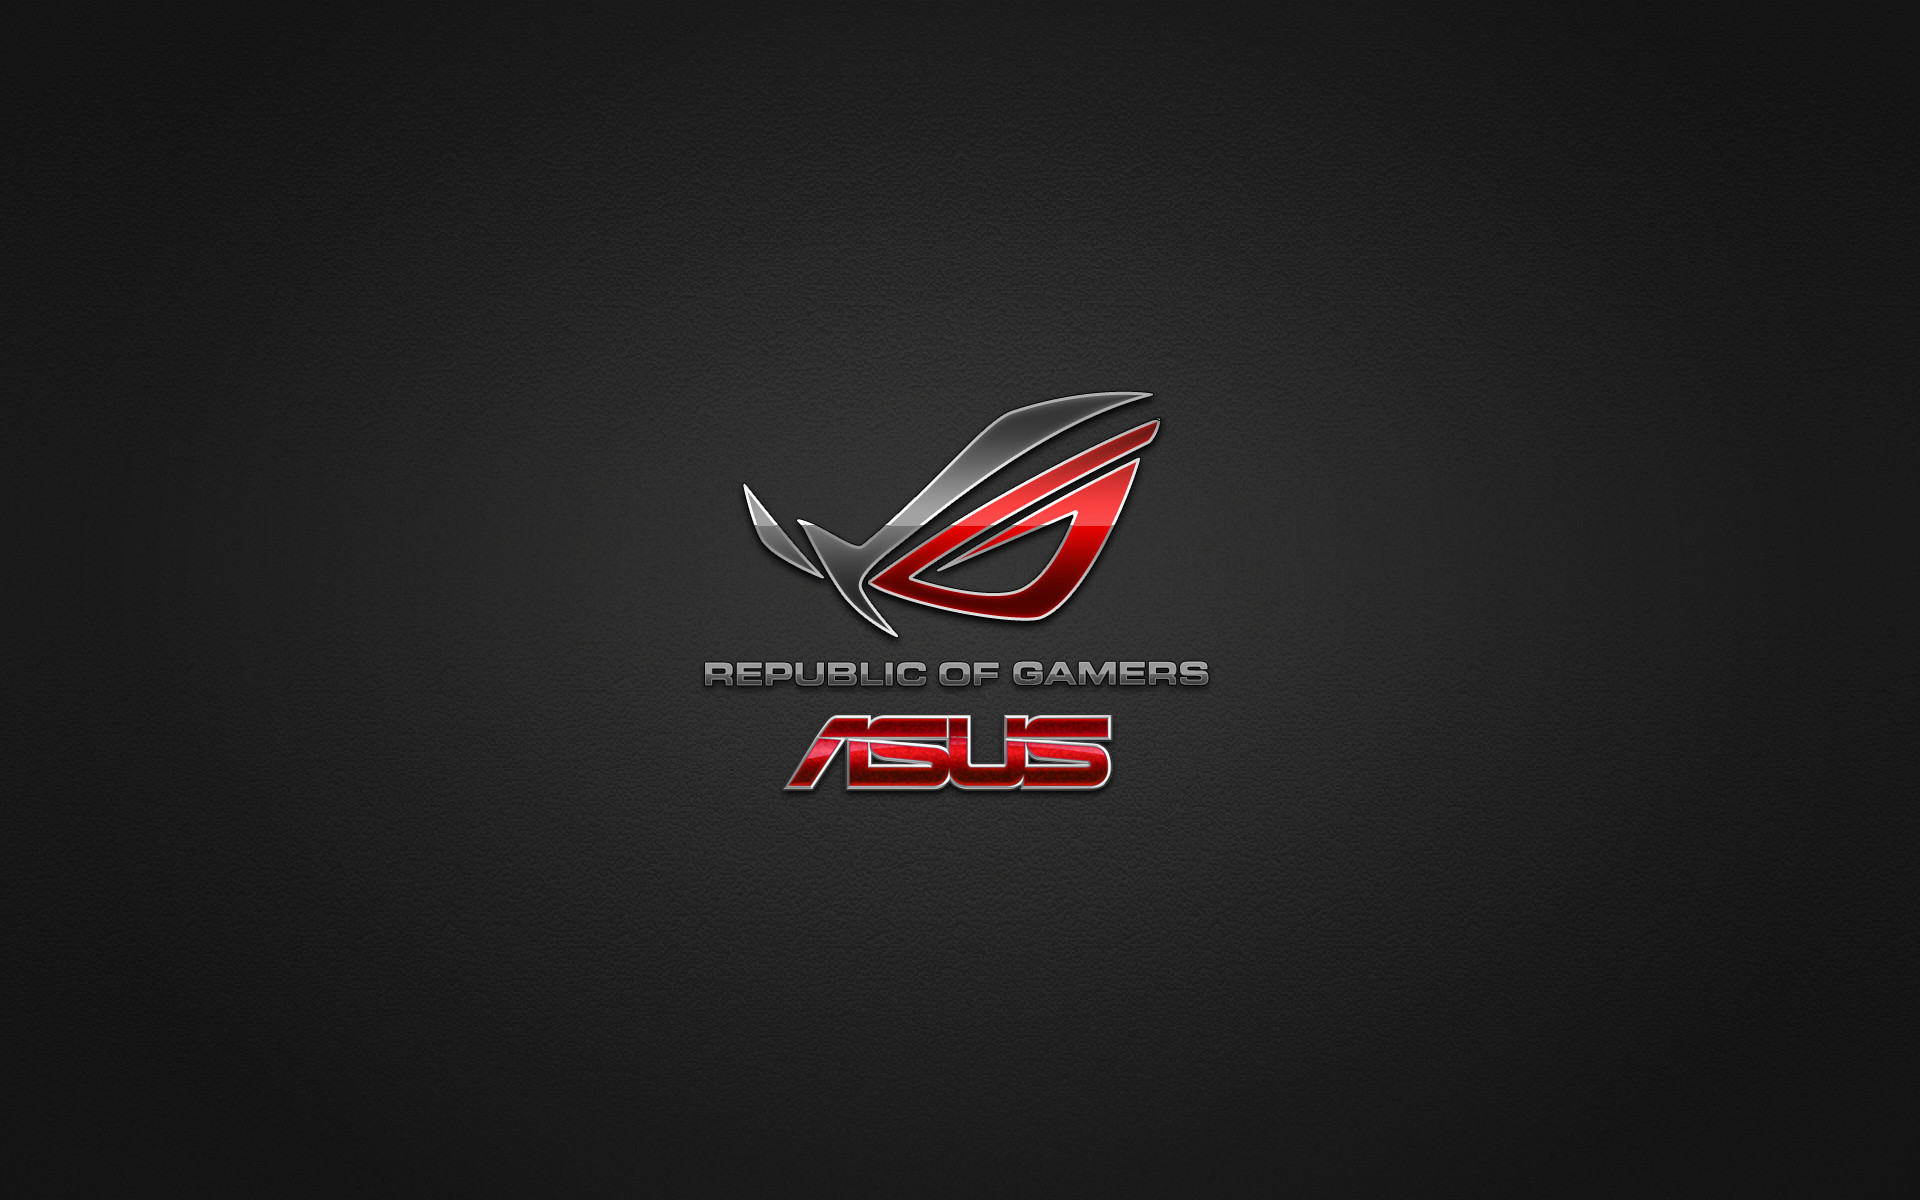 Asus ROG Wallpaper [Archive] – ASUS Republic of Gamers [ROG]   The Choice  of Champions – Overclocking, PC Gaming, PC Modding, Support, Guides, Advice